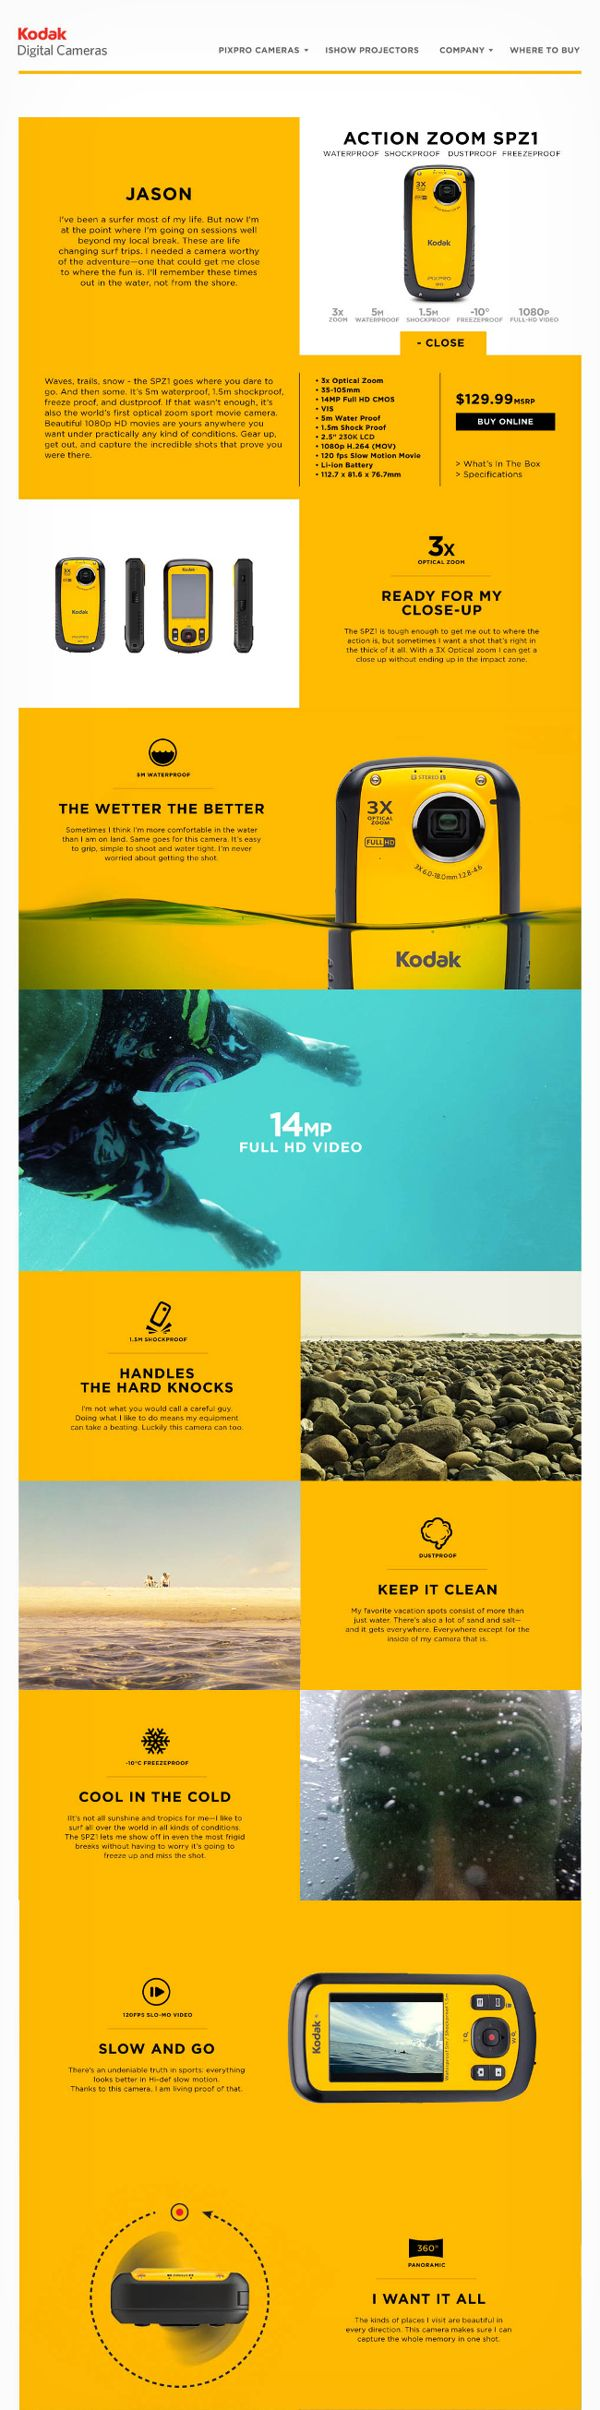 Kodak Digital Cameras on Web Design Served